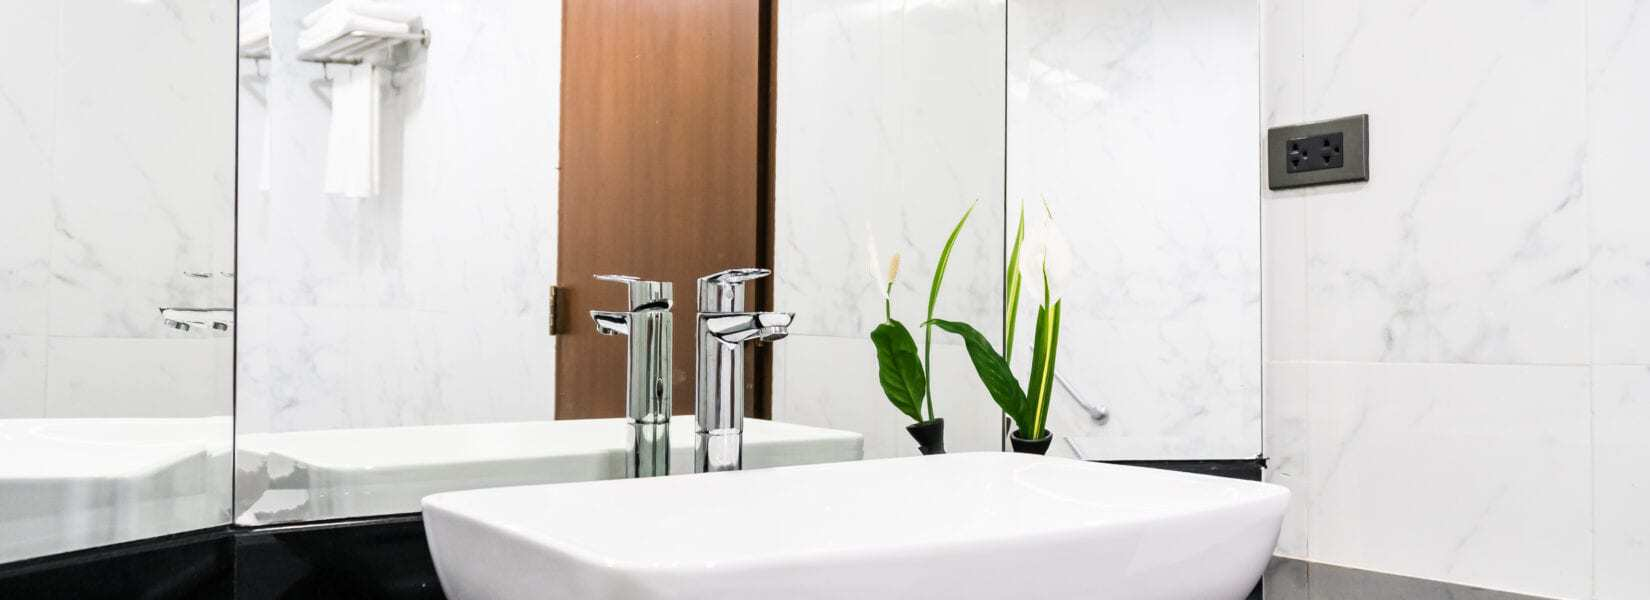 How to Create a Minimalist Bathroom That Still Has Great Style